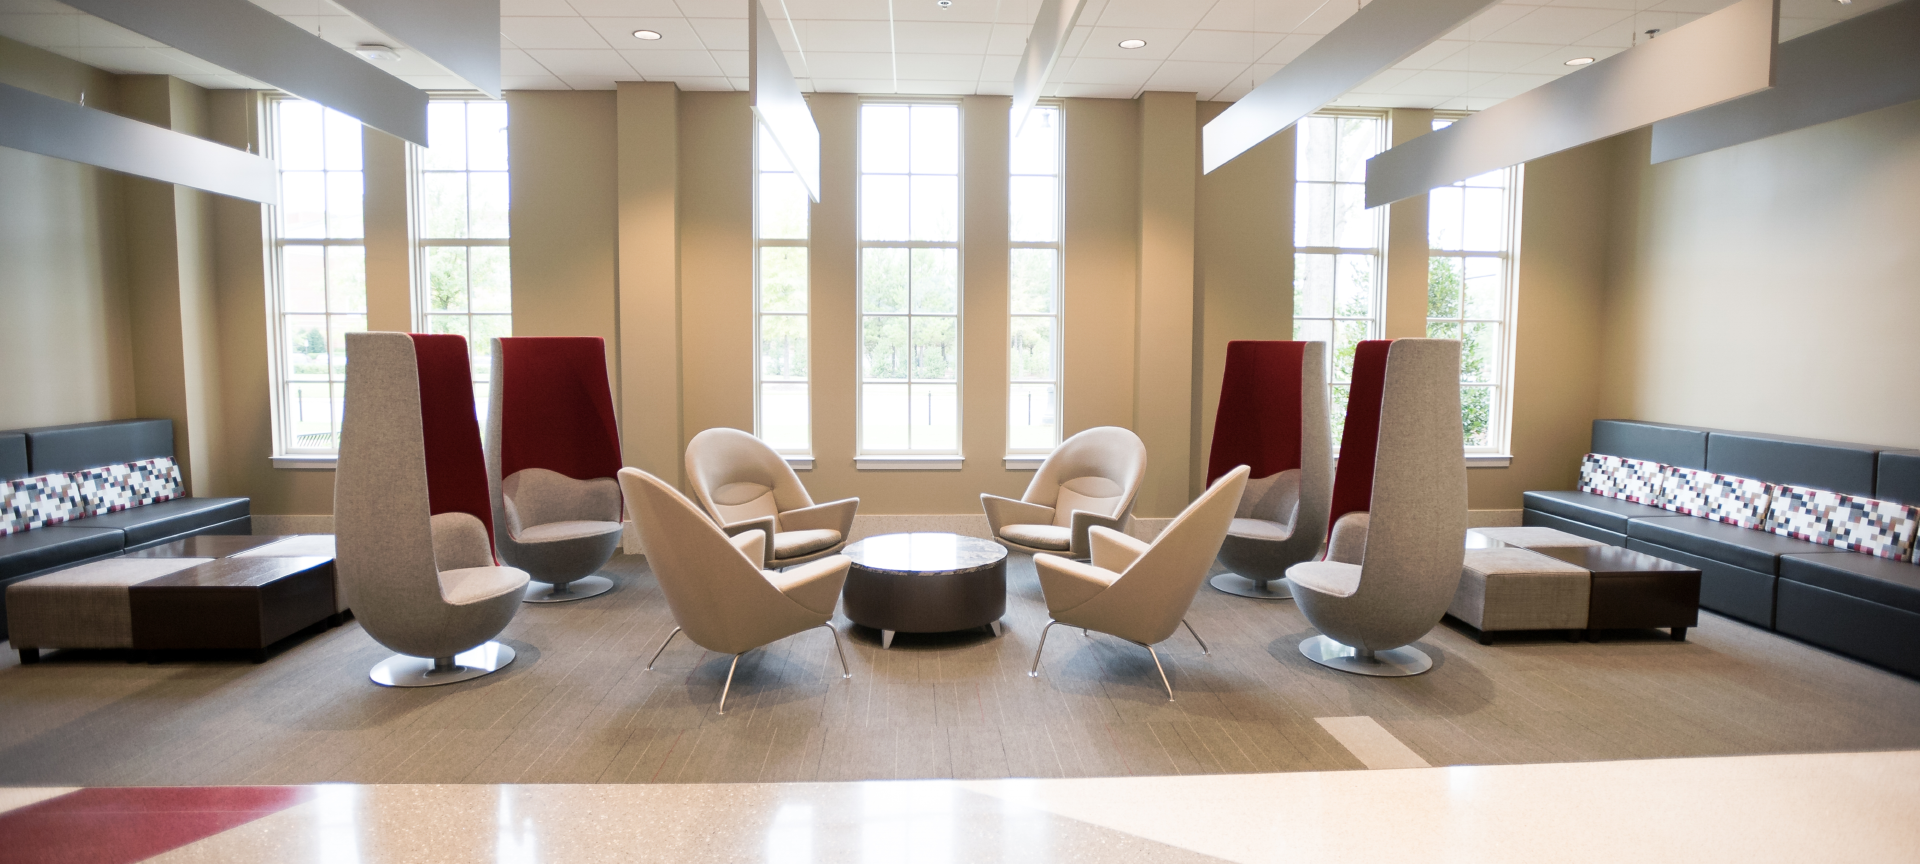 North Lawn Hall Common Area Seating Options